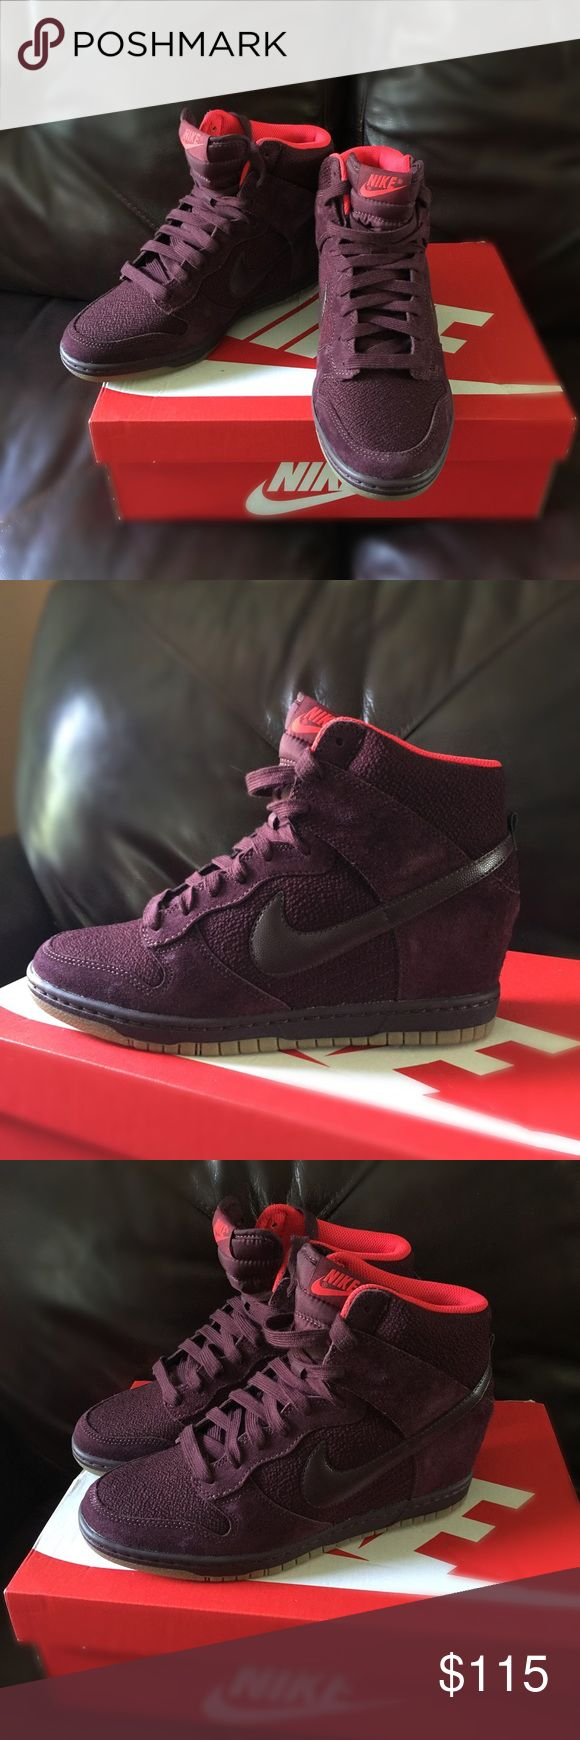 Nike Sky Hi wedge sneakers New with original box burgundy color Nike Shoes Sneakers